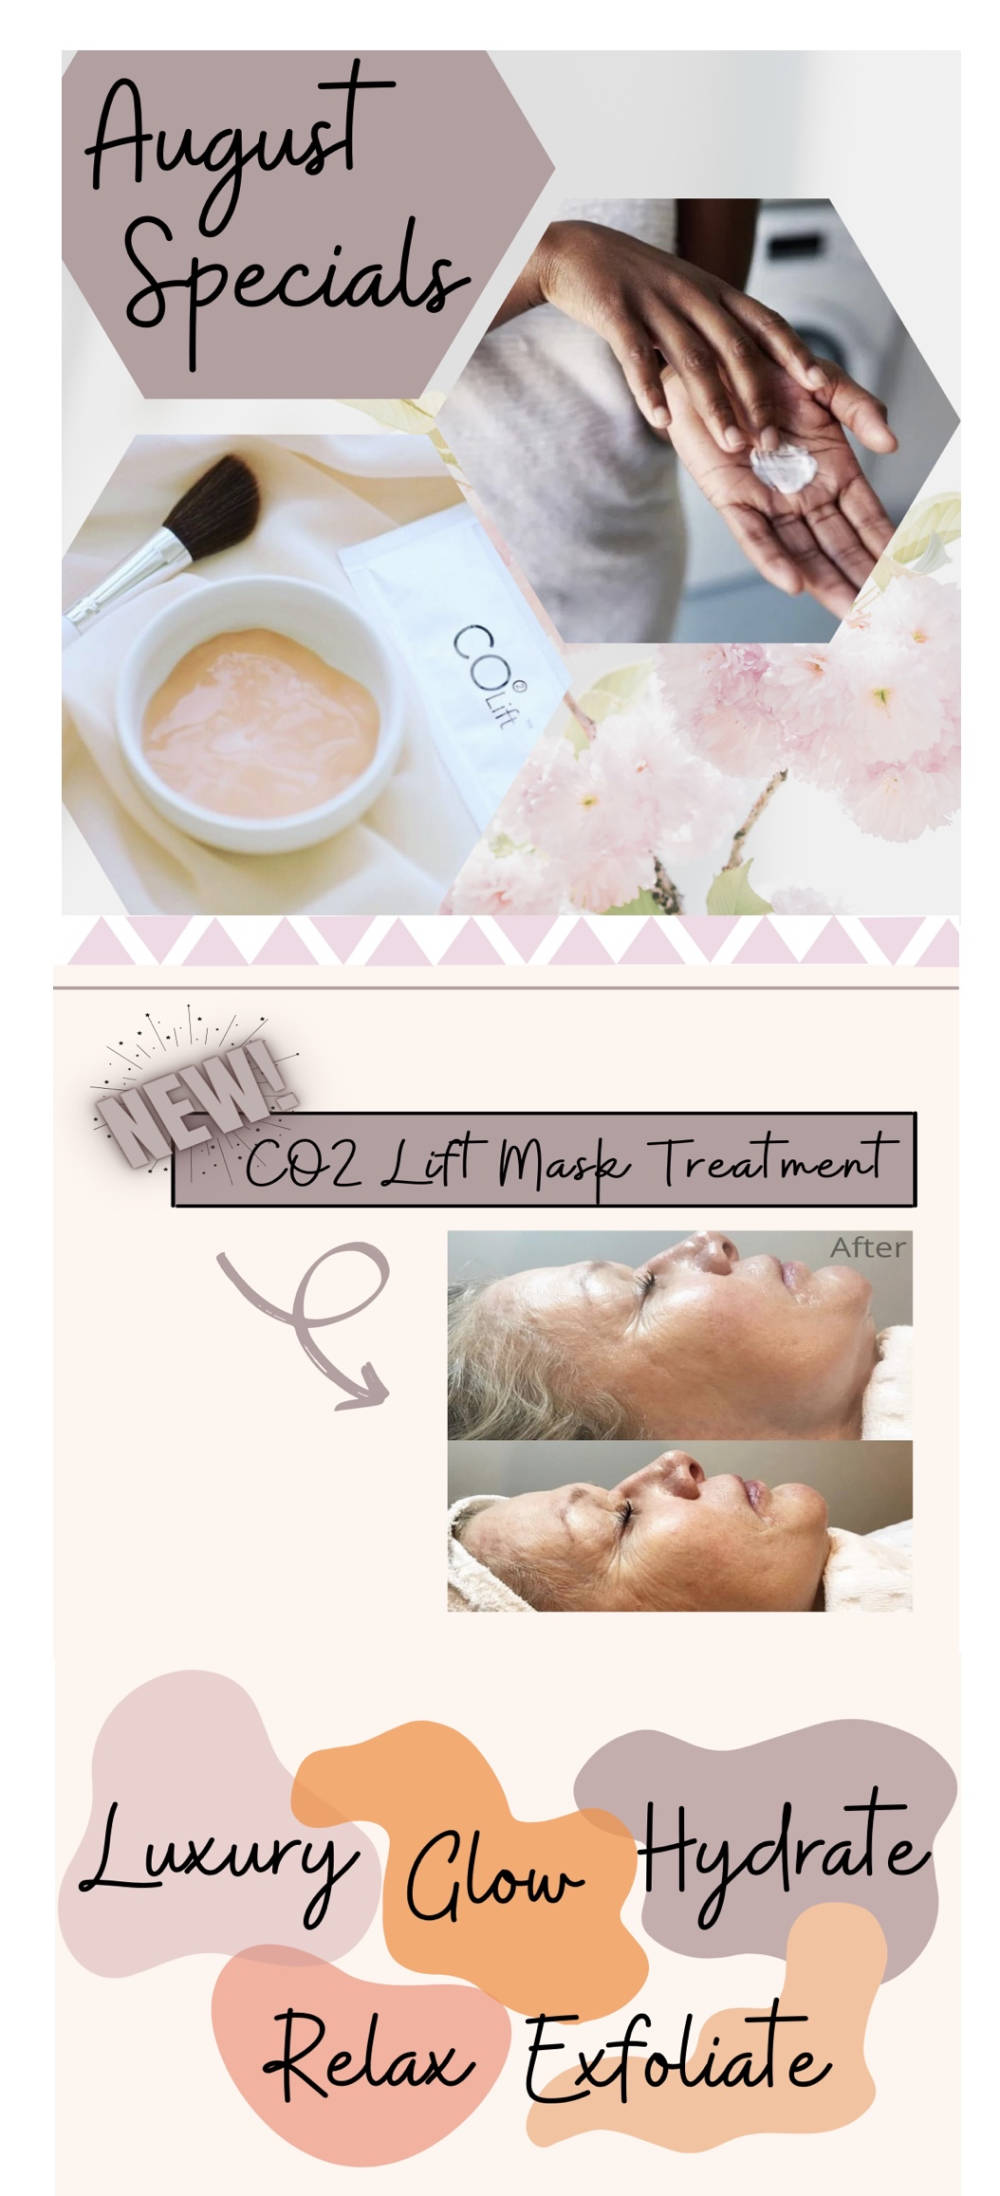 August 2021 Specials Charleston Southern Cosmetic Laser